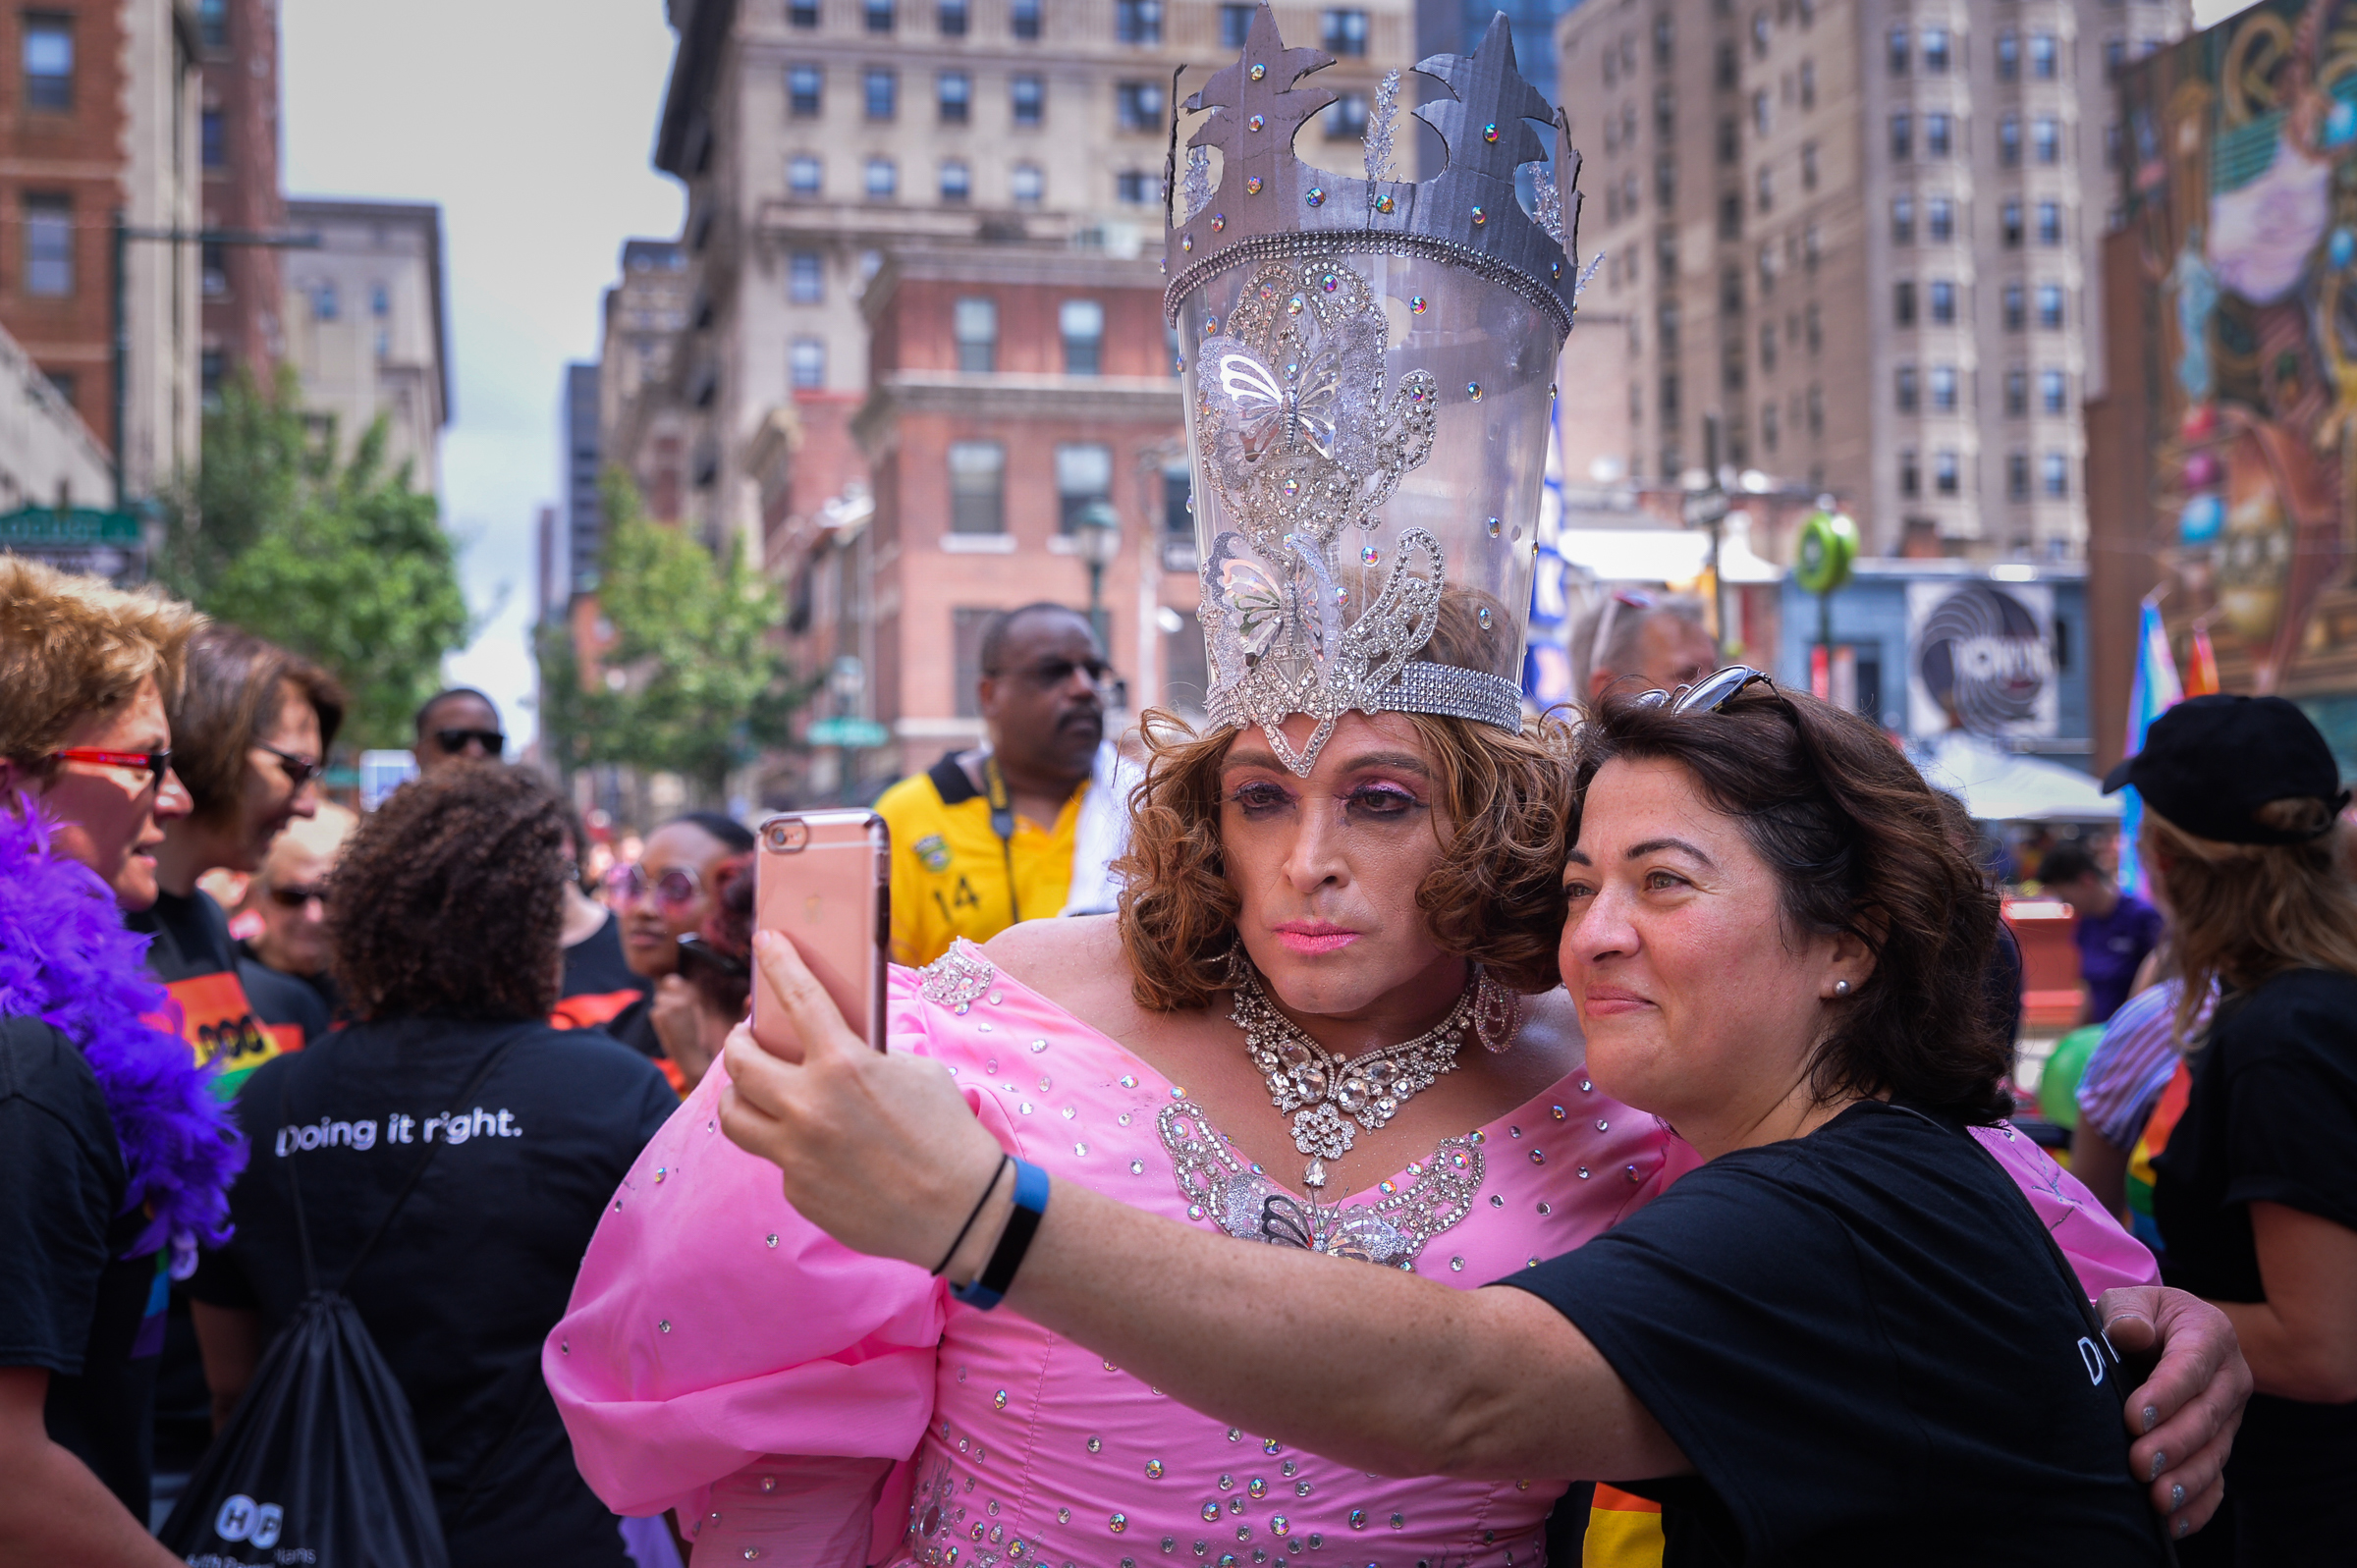 Jeffrey Snyder and Lisa Gallagher pose for a selfie at the Philly Pride Parade, which stretched from the Gayborhood to Penn´s Landing. June 18th, 2017.